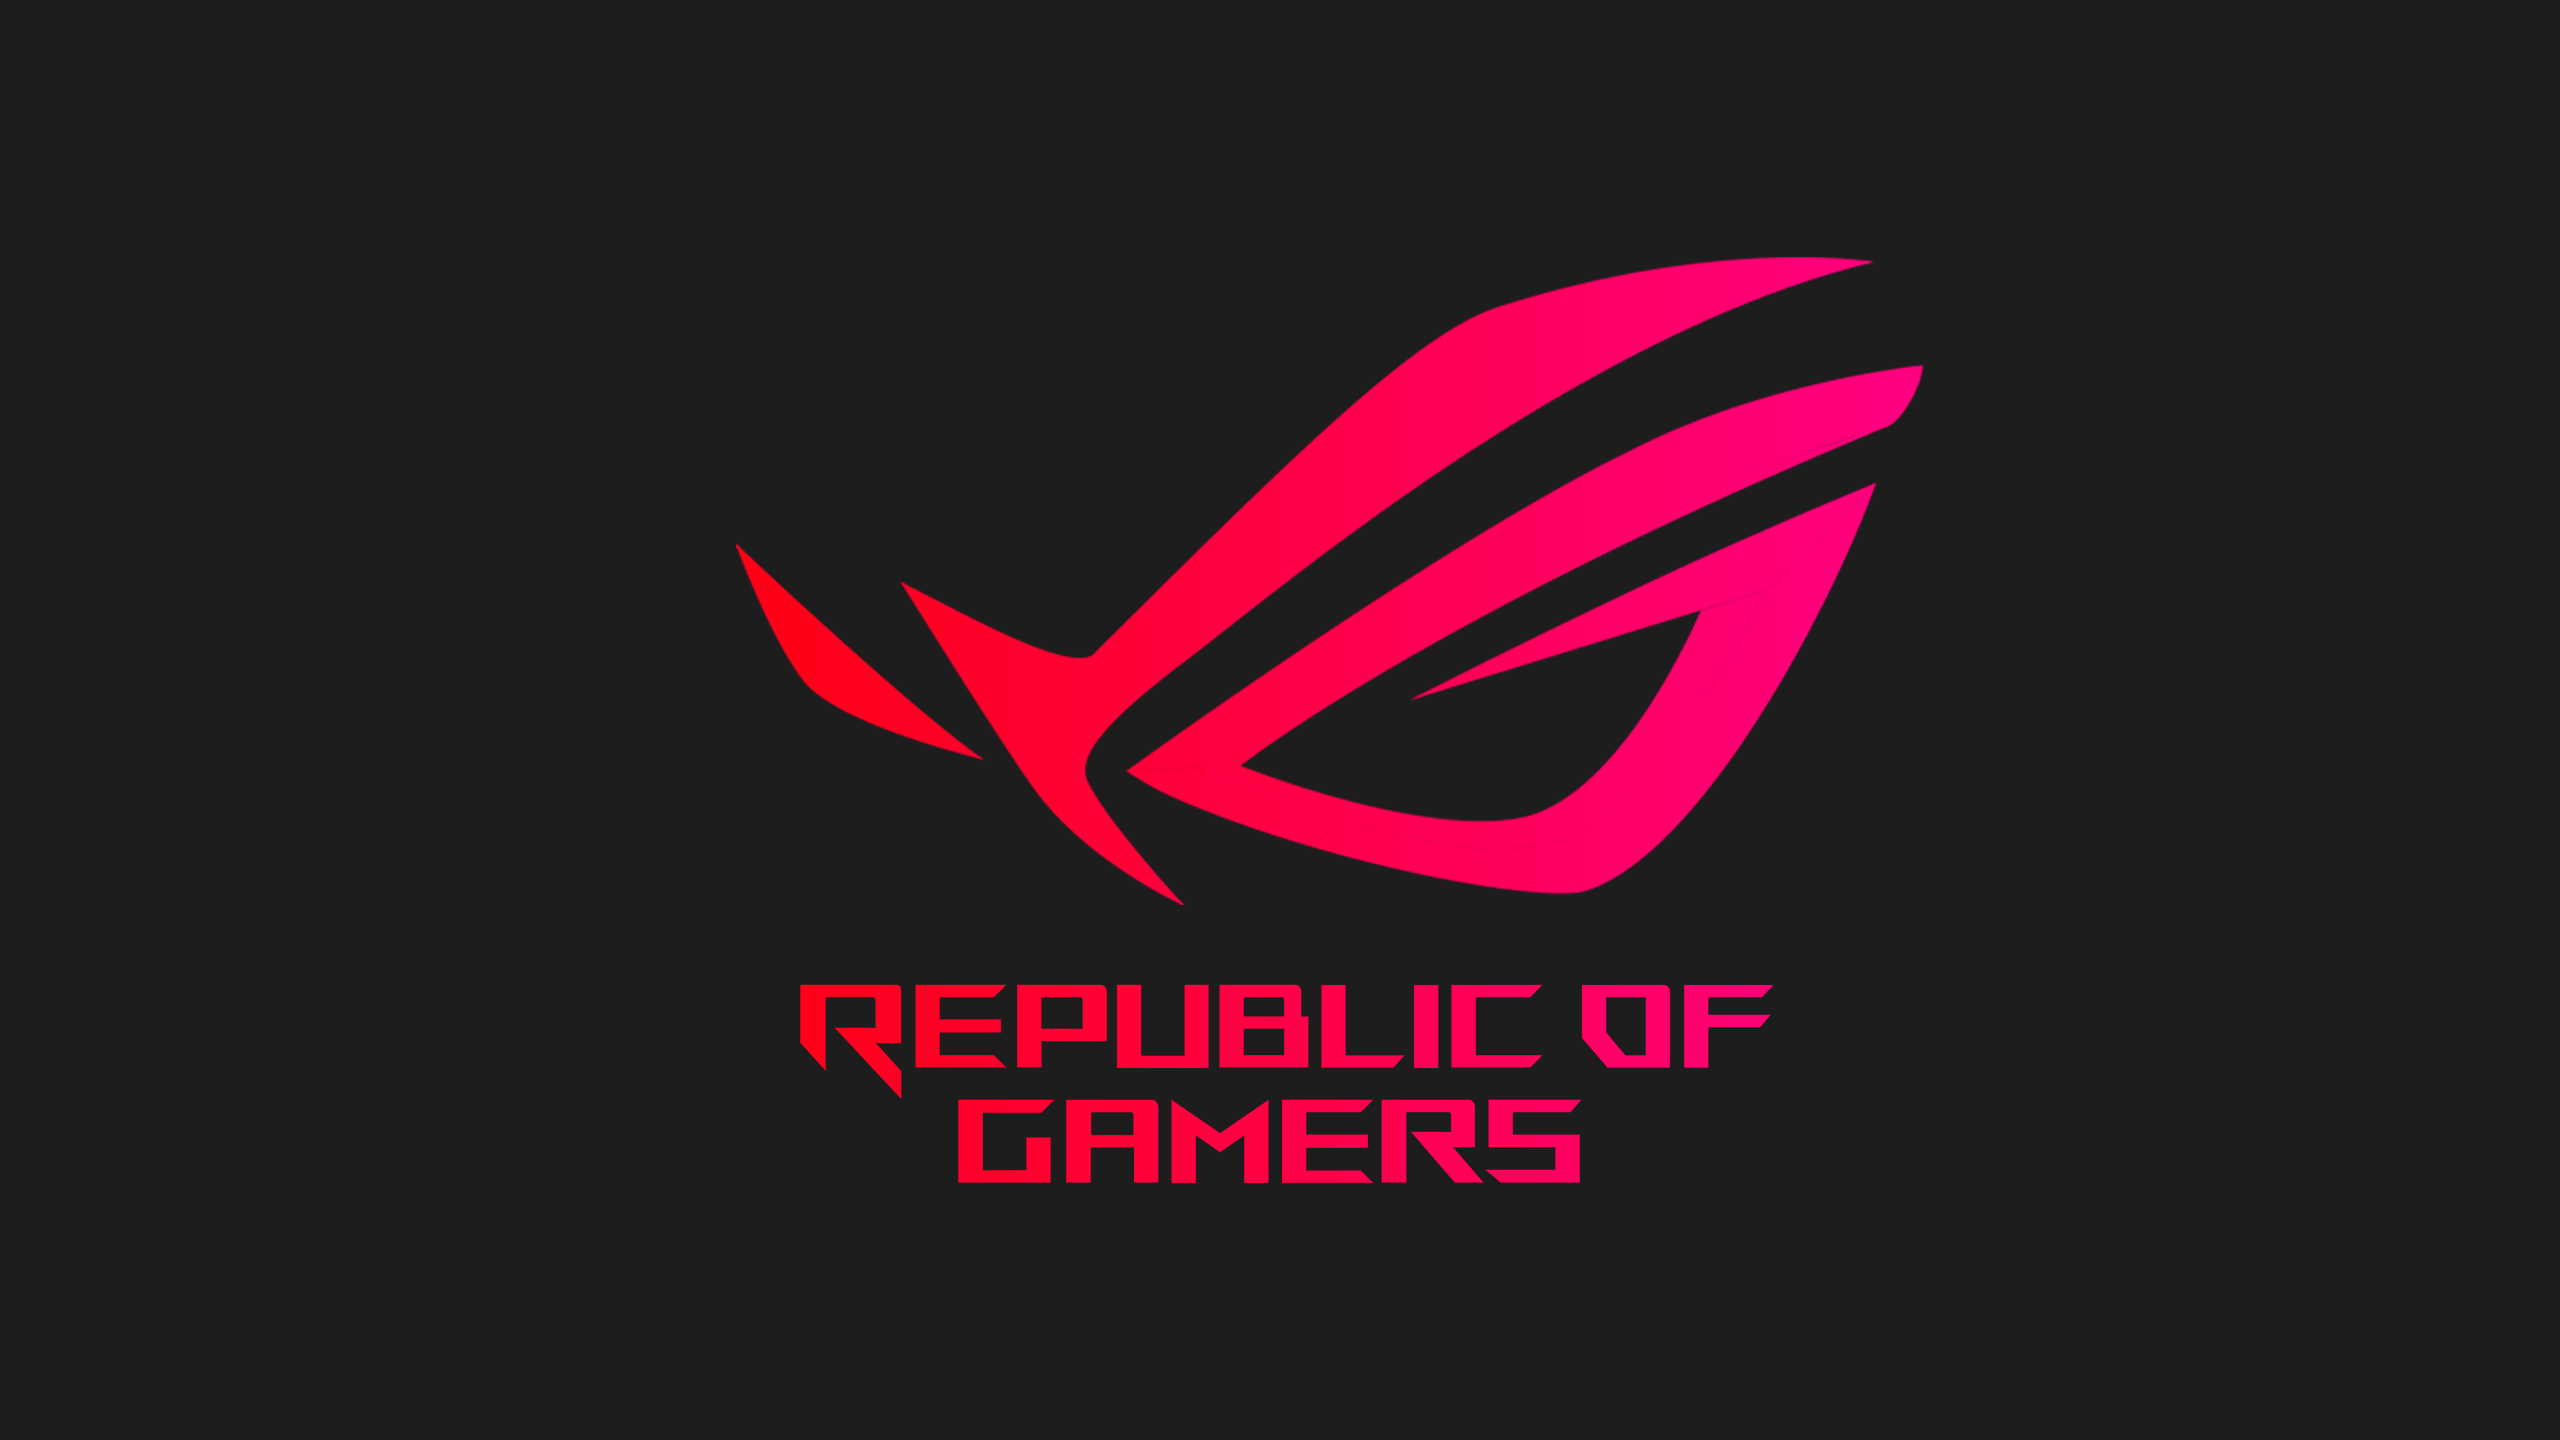 Rgb Wallpapers Top Free Rgb Backgrounds Wallpaperaccess - Republic Of Gamers Rgb , HD Wallpaper & Backgrounds